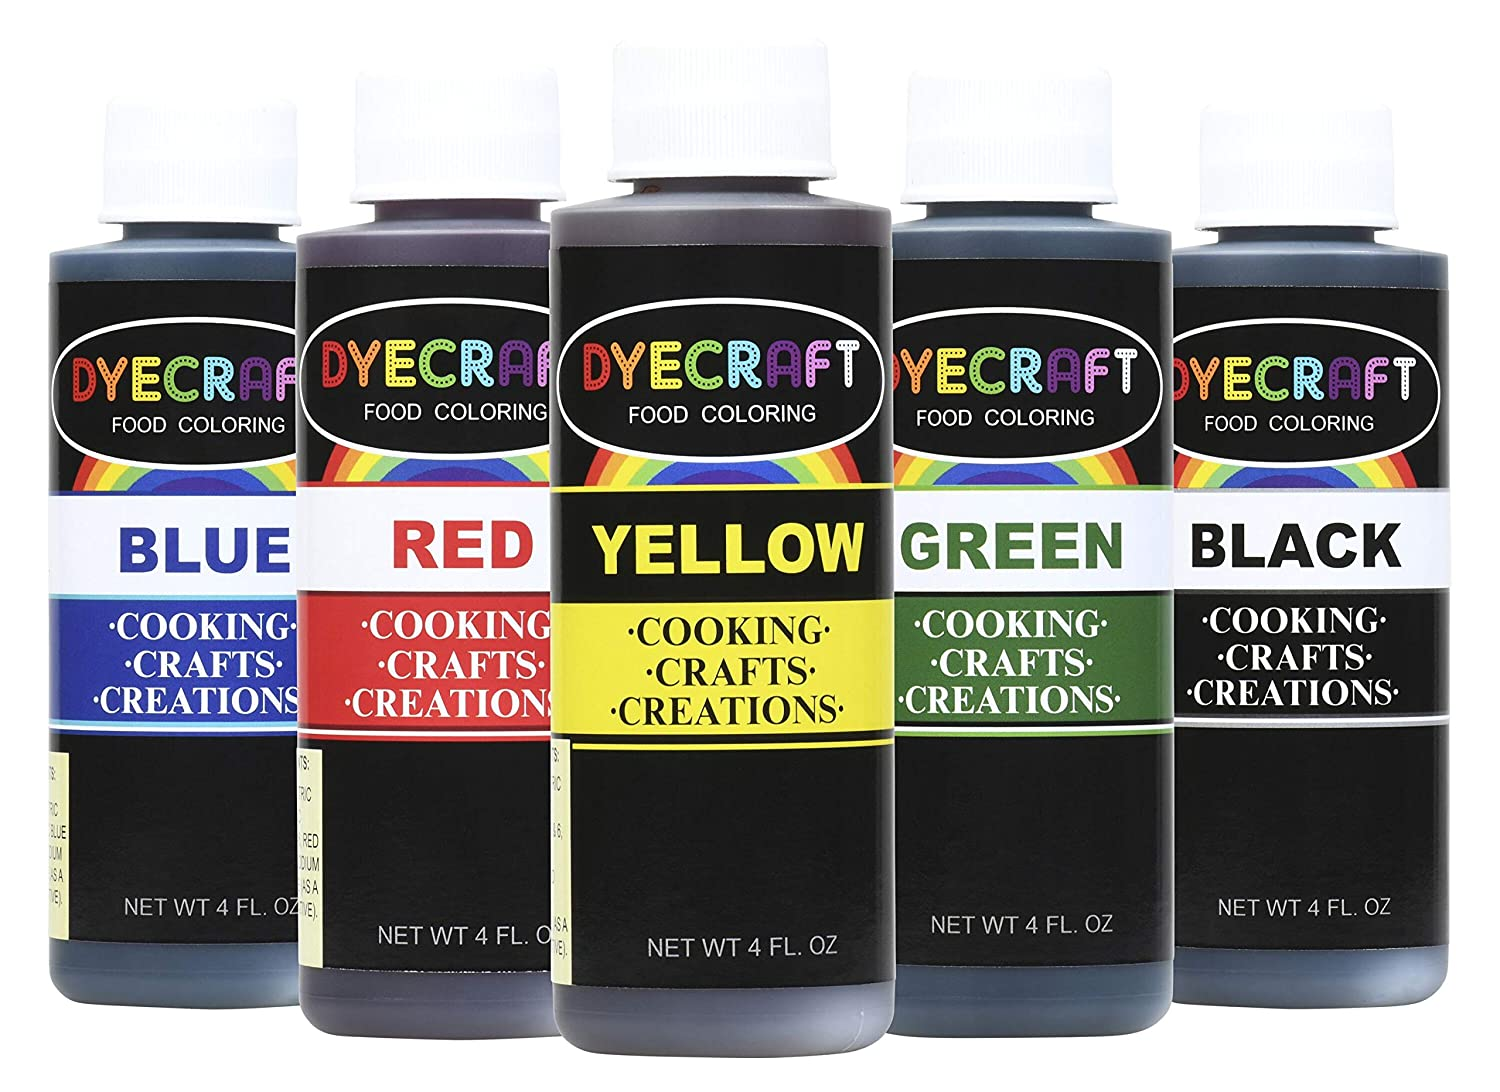 DyeCraft Food Coloring Multi-Pack (Green, Yellow, Blue, Red, Black) LARGE 4oz BOTTLES- Odorless, Tasteless, Edible- Perfect for Baking, Cooking, Arts & Crafts, Decorations and more